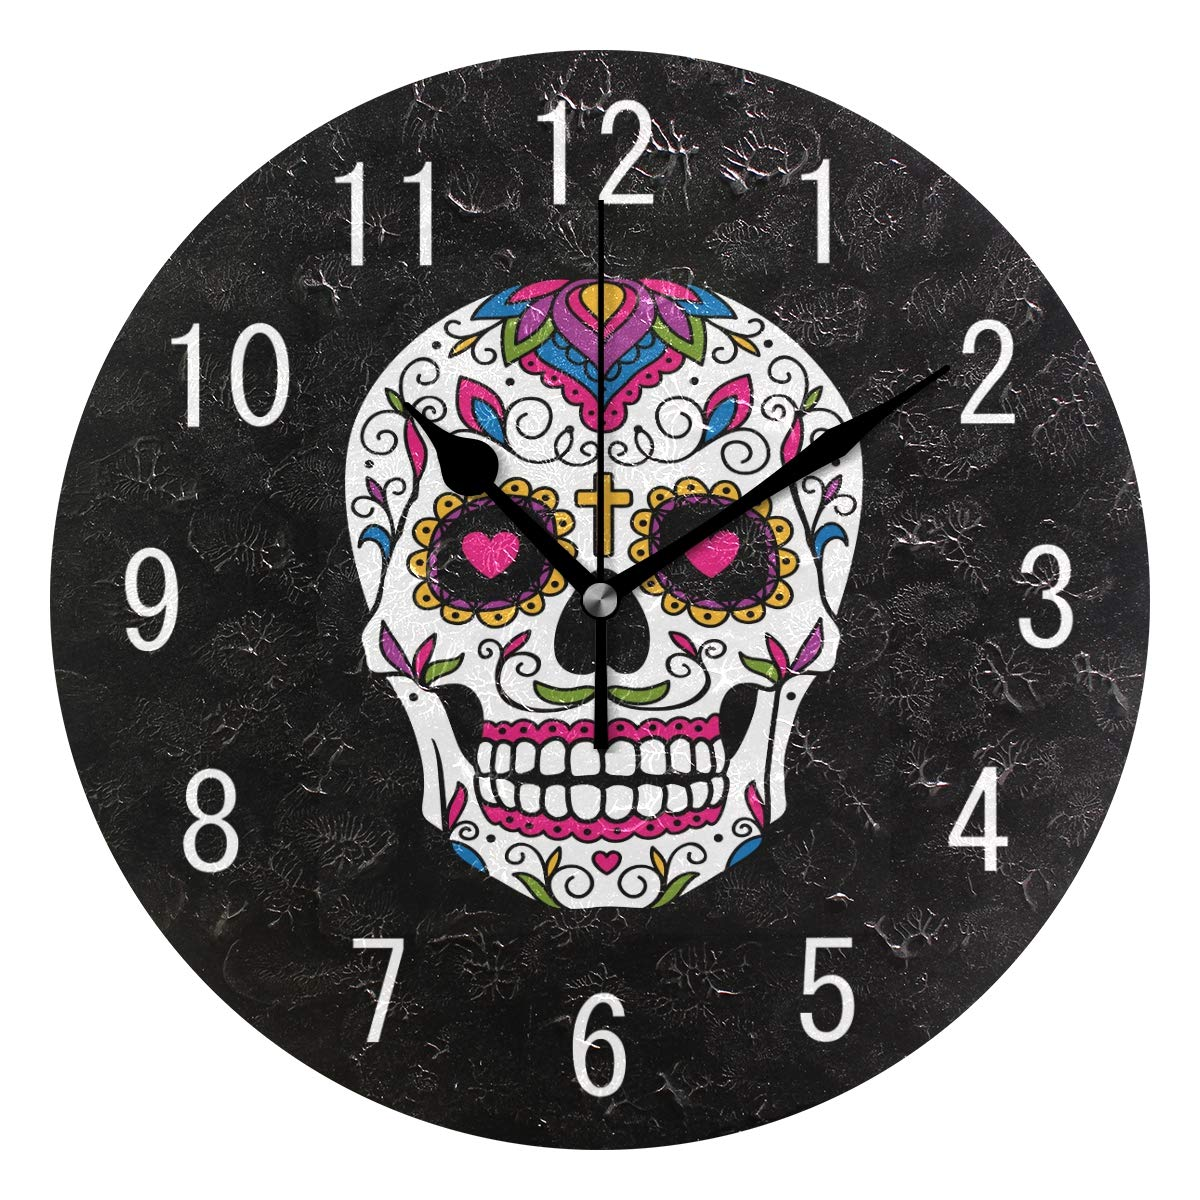 ALAZA Home Decor Mexican Sugar Skull Black Round Acrylic Wall Clock Non Ticking Silent Clock Art Living Room Kitchen Bedroom g7032164p239c274s441